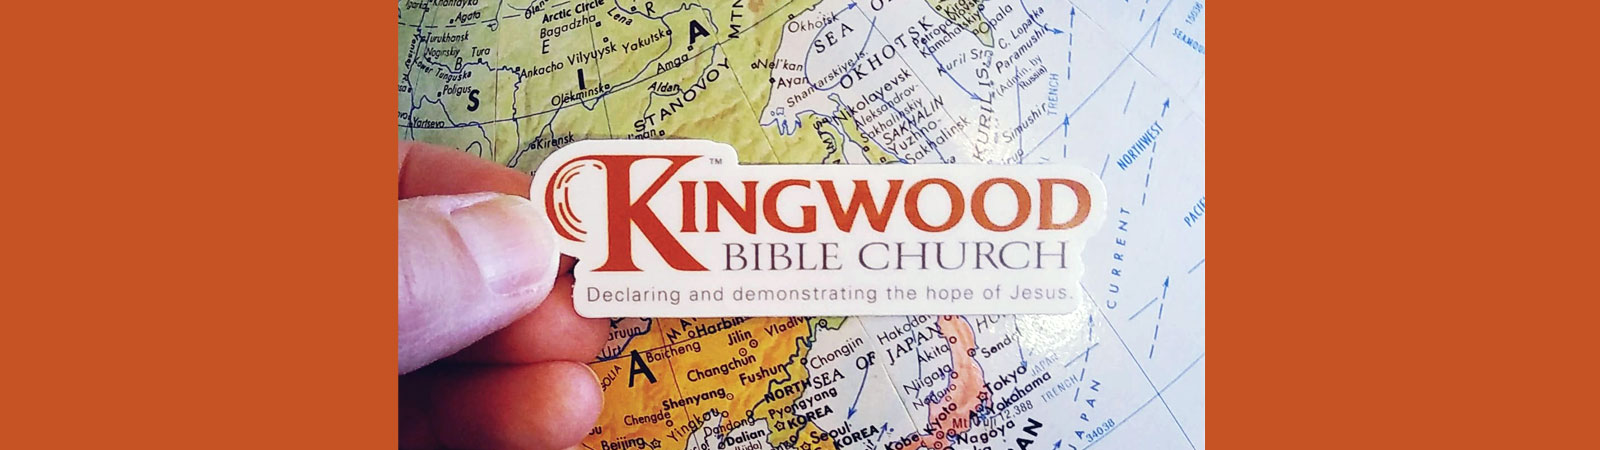 kingwood-bible-world-collage